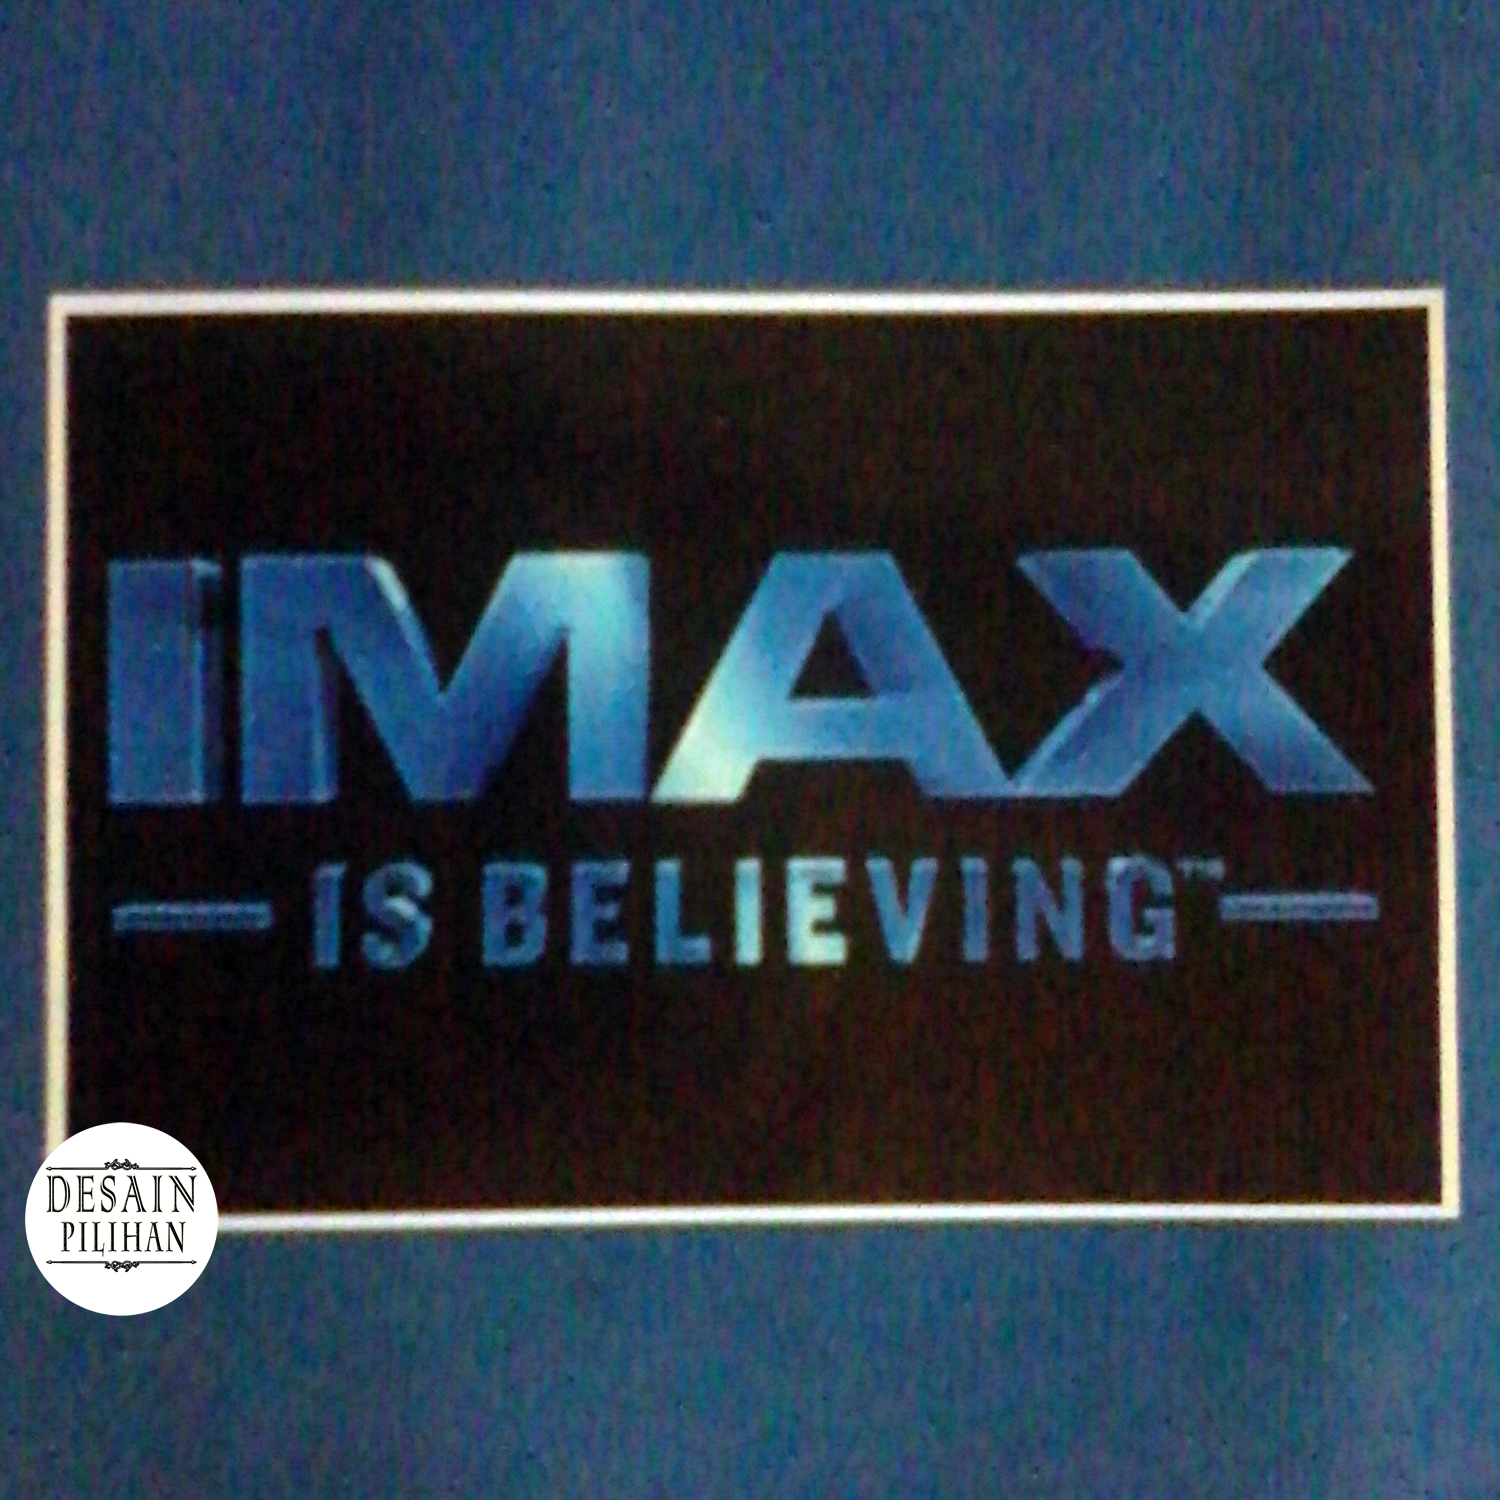 POSTER IMAX IS BELIEVING